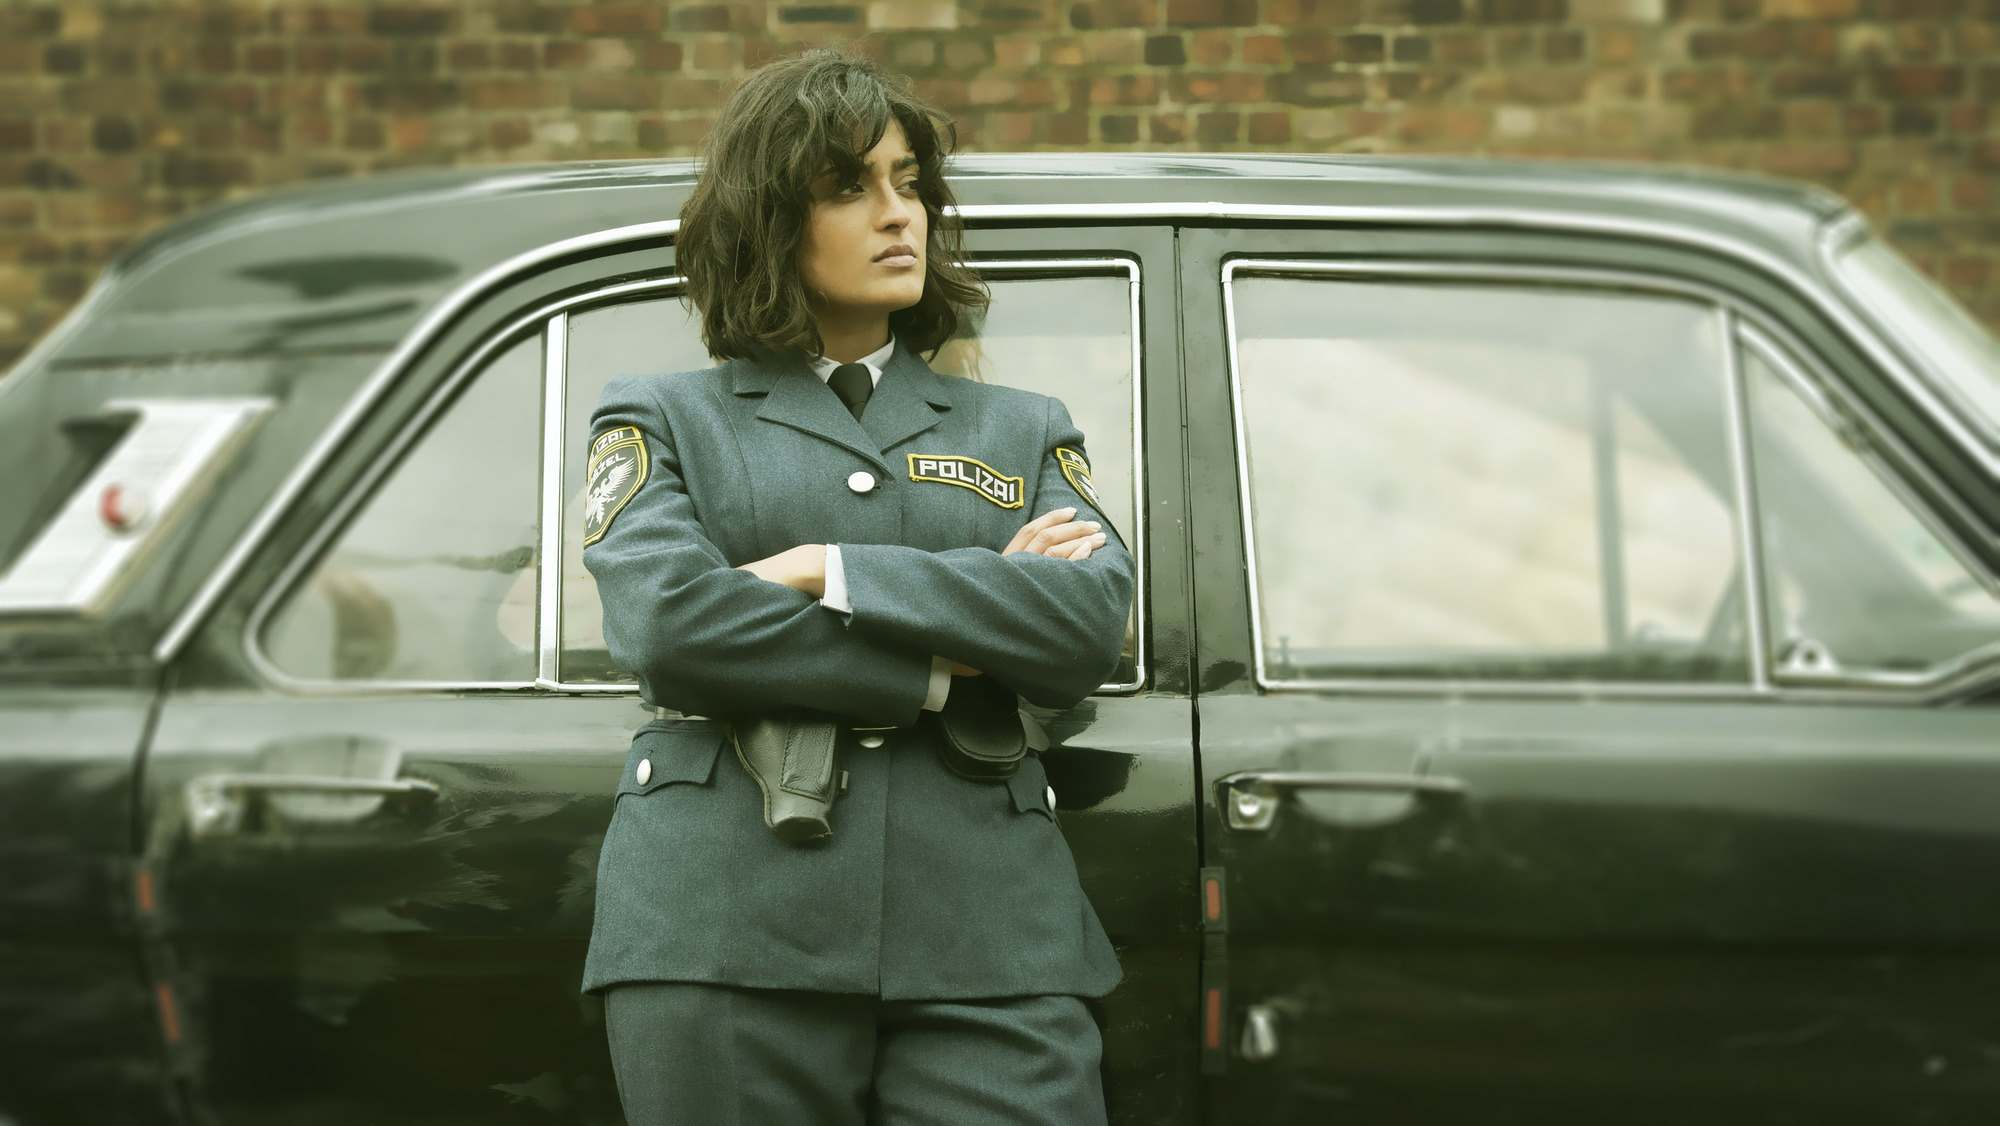 Mandeep Dhillon as Constable Corwi in The City and the City (2018)